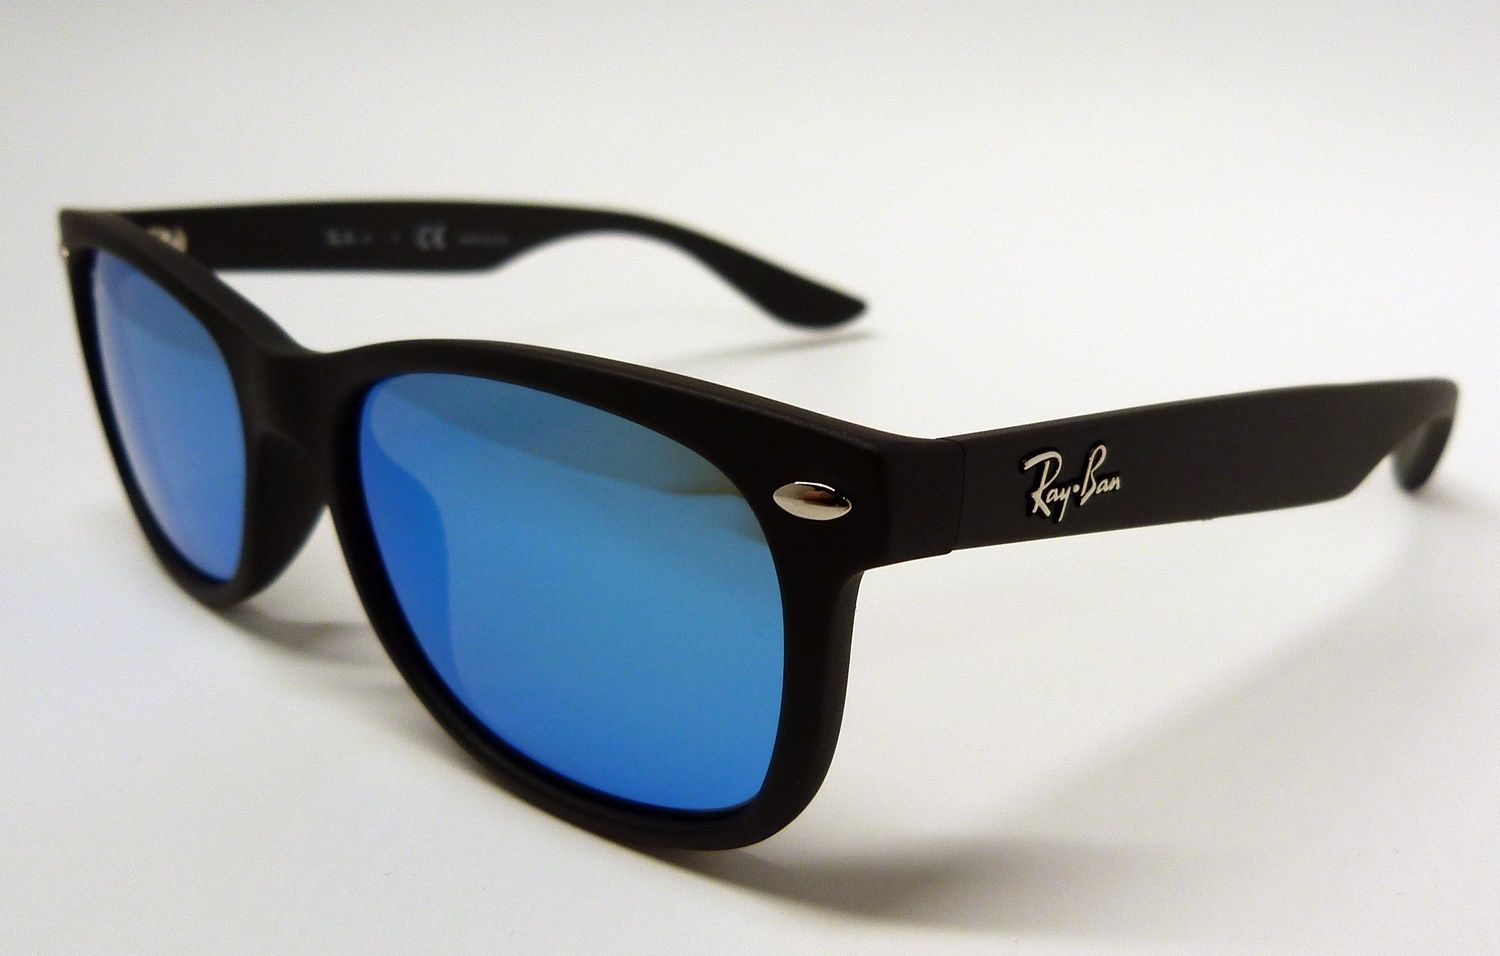 dadaaf0628 Ray Ban RJ9052S 100S 55 NEW WAYFARER JUNIOR Black Blue Mirror Sunglasses  Y3 15